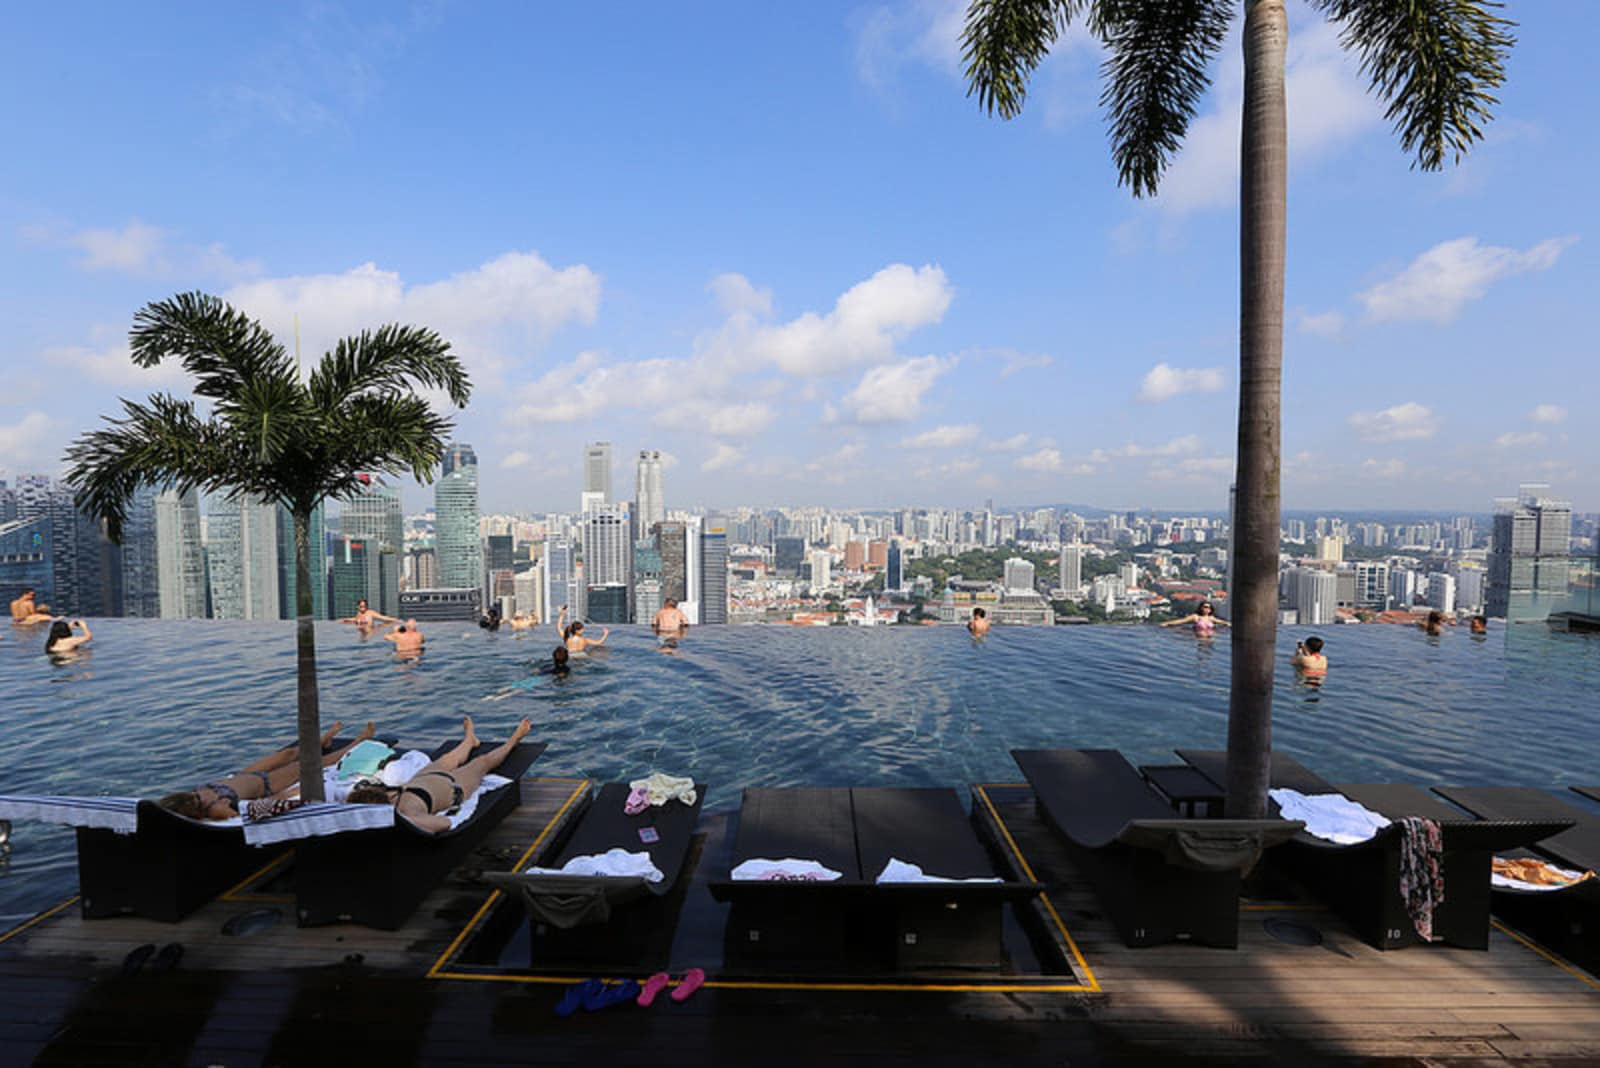 The Marina Bay Sands Hotel infinity pool overlooking the Singapore skyline